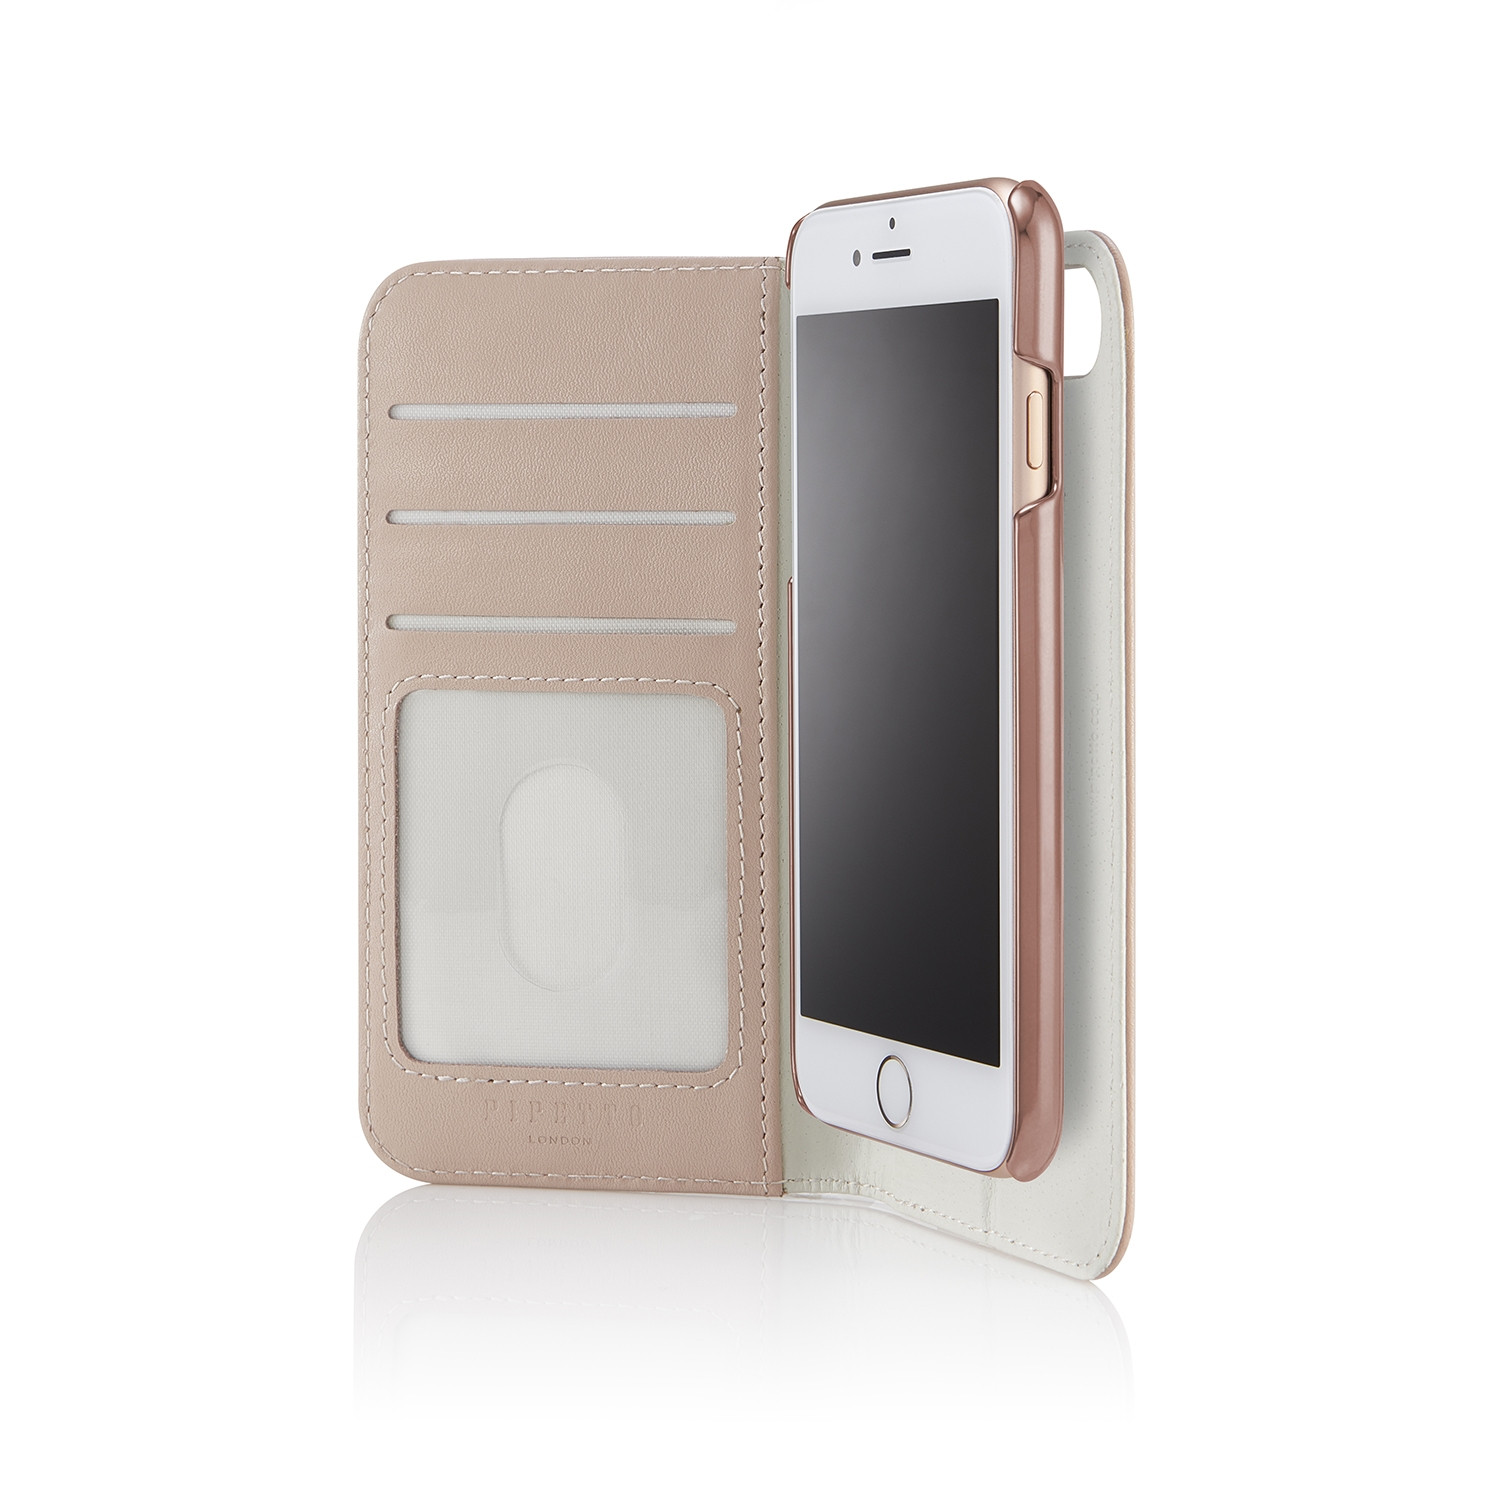 cheap for discount 47dbd 17123 iPhone 6/7/8 2-in-1 Leather Magnetic Folio Case - Dusty Pink